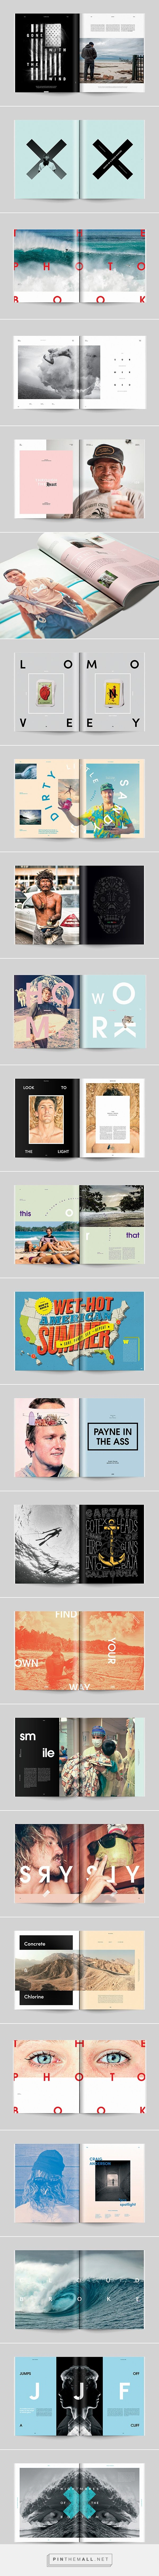 Transworld Surf Features on Behance - created via https://pinthemall.net